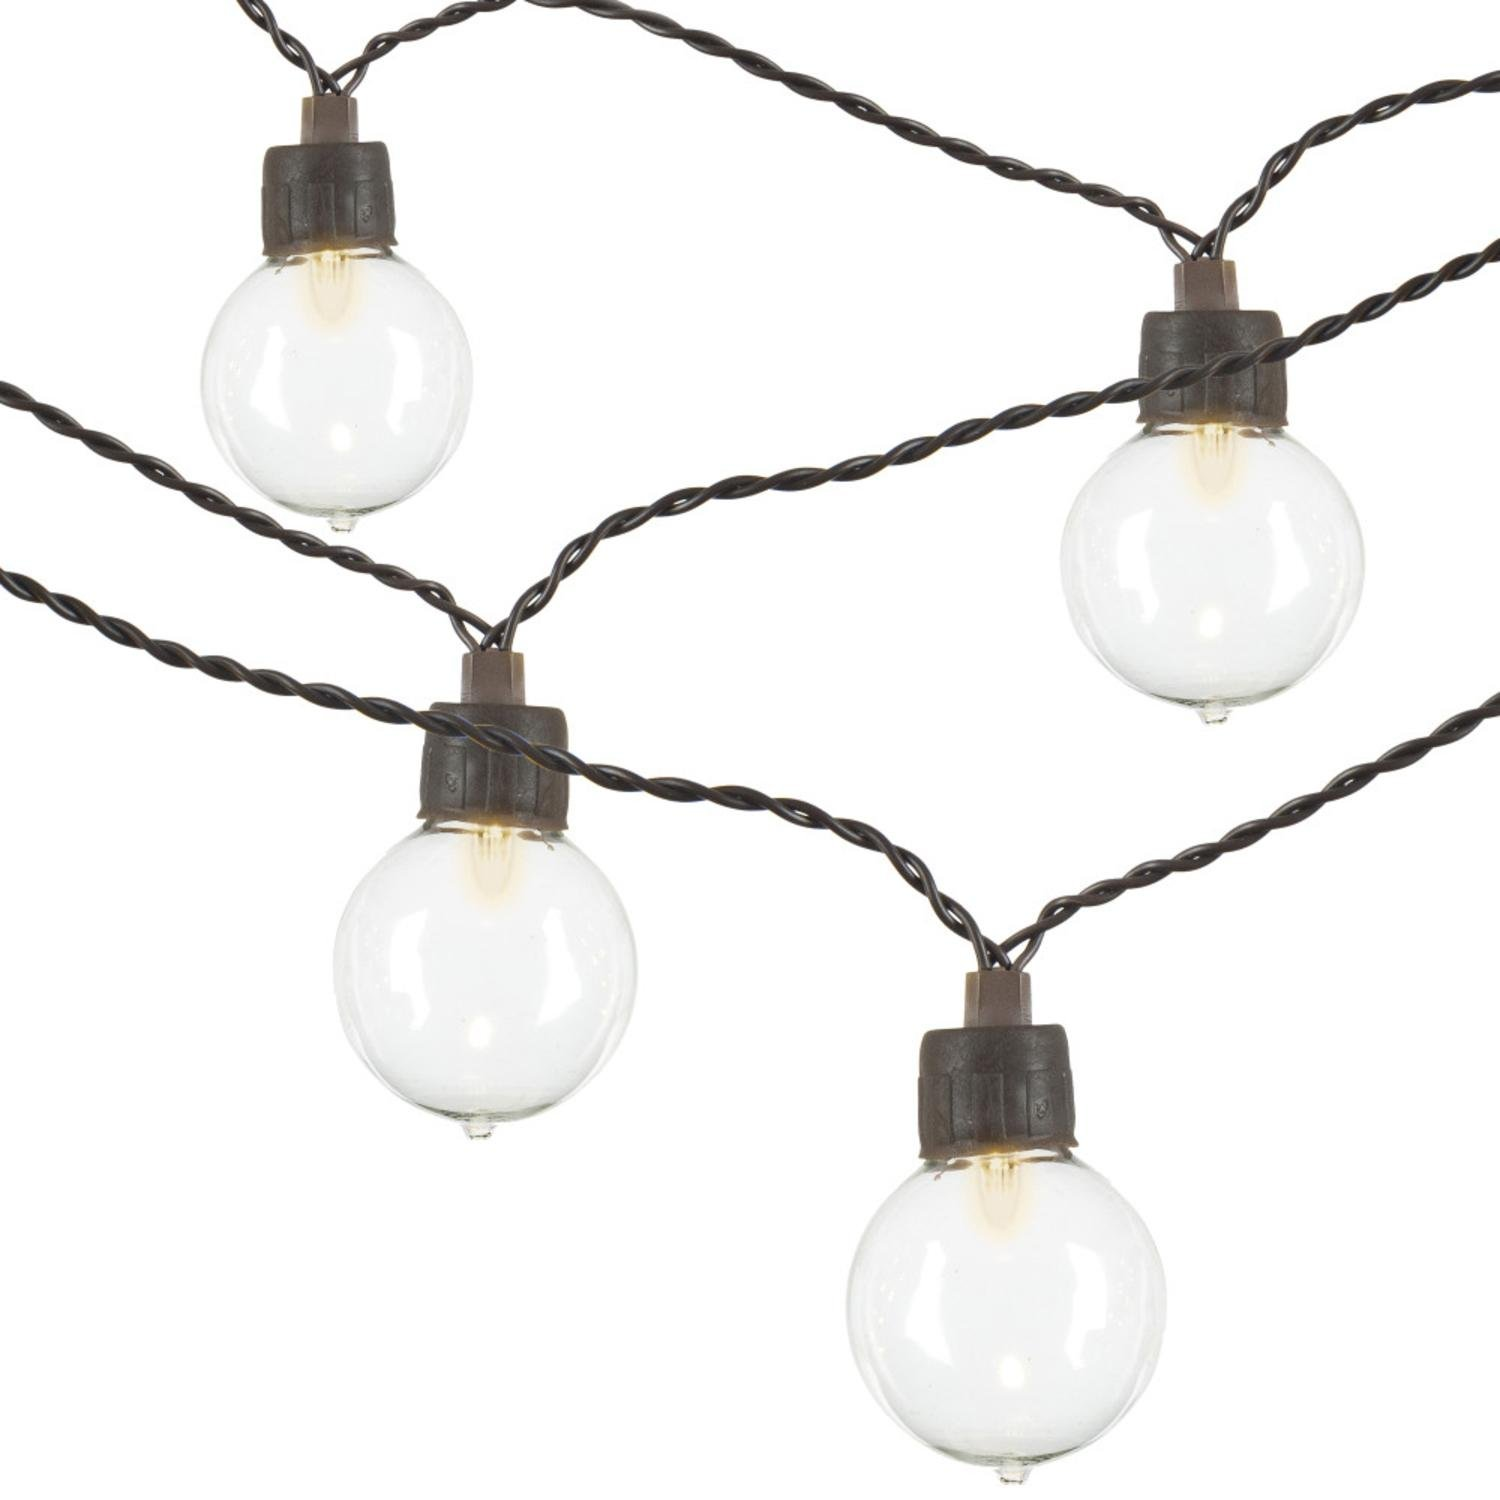 Diva At Home Club Pack of 20 Warm White Solar G40 String Light Bulbs with Brown Wire 12'